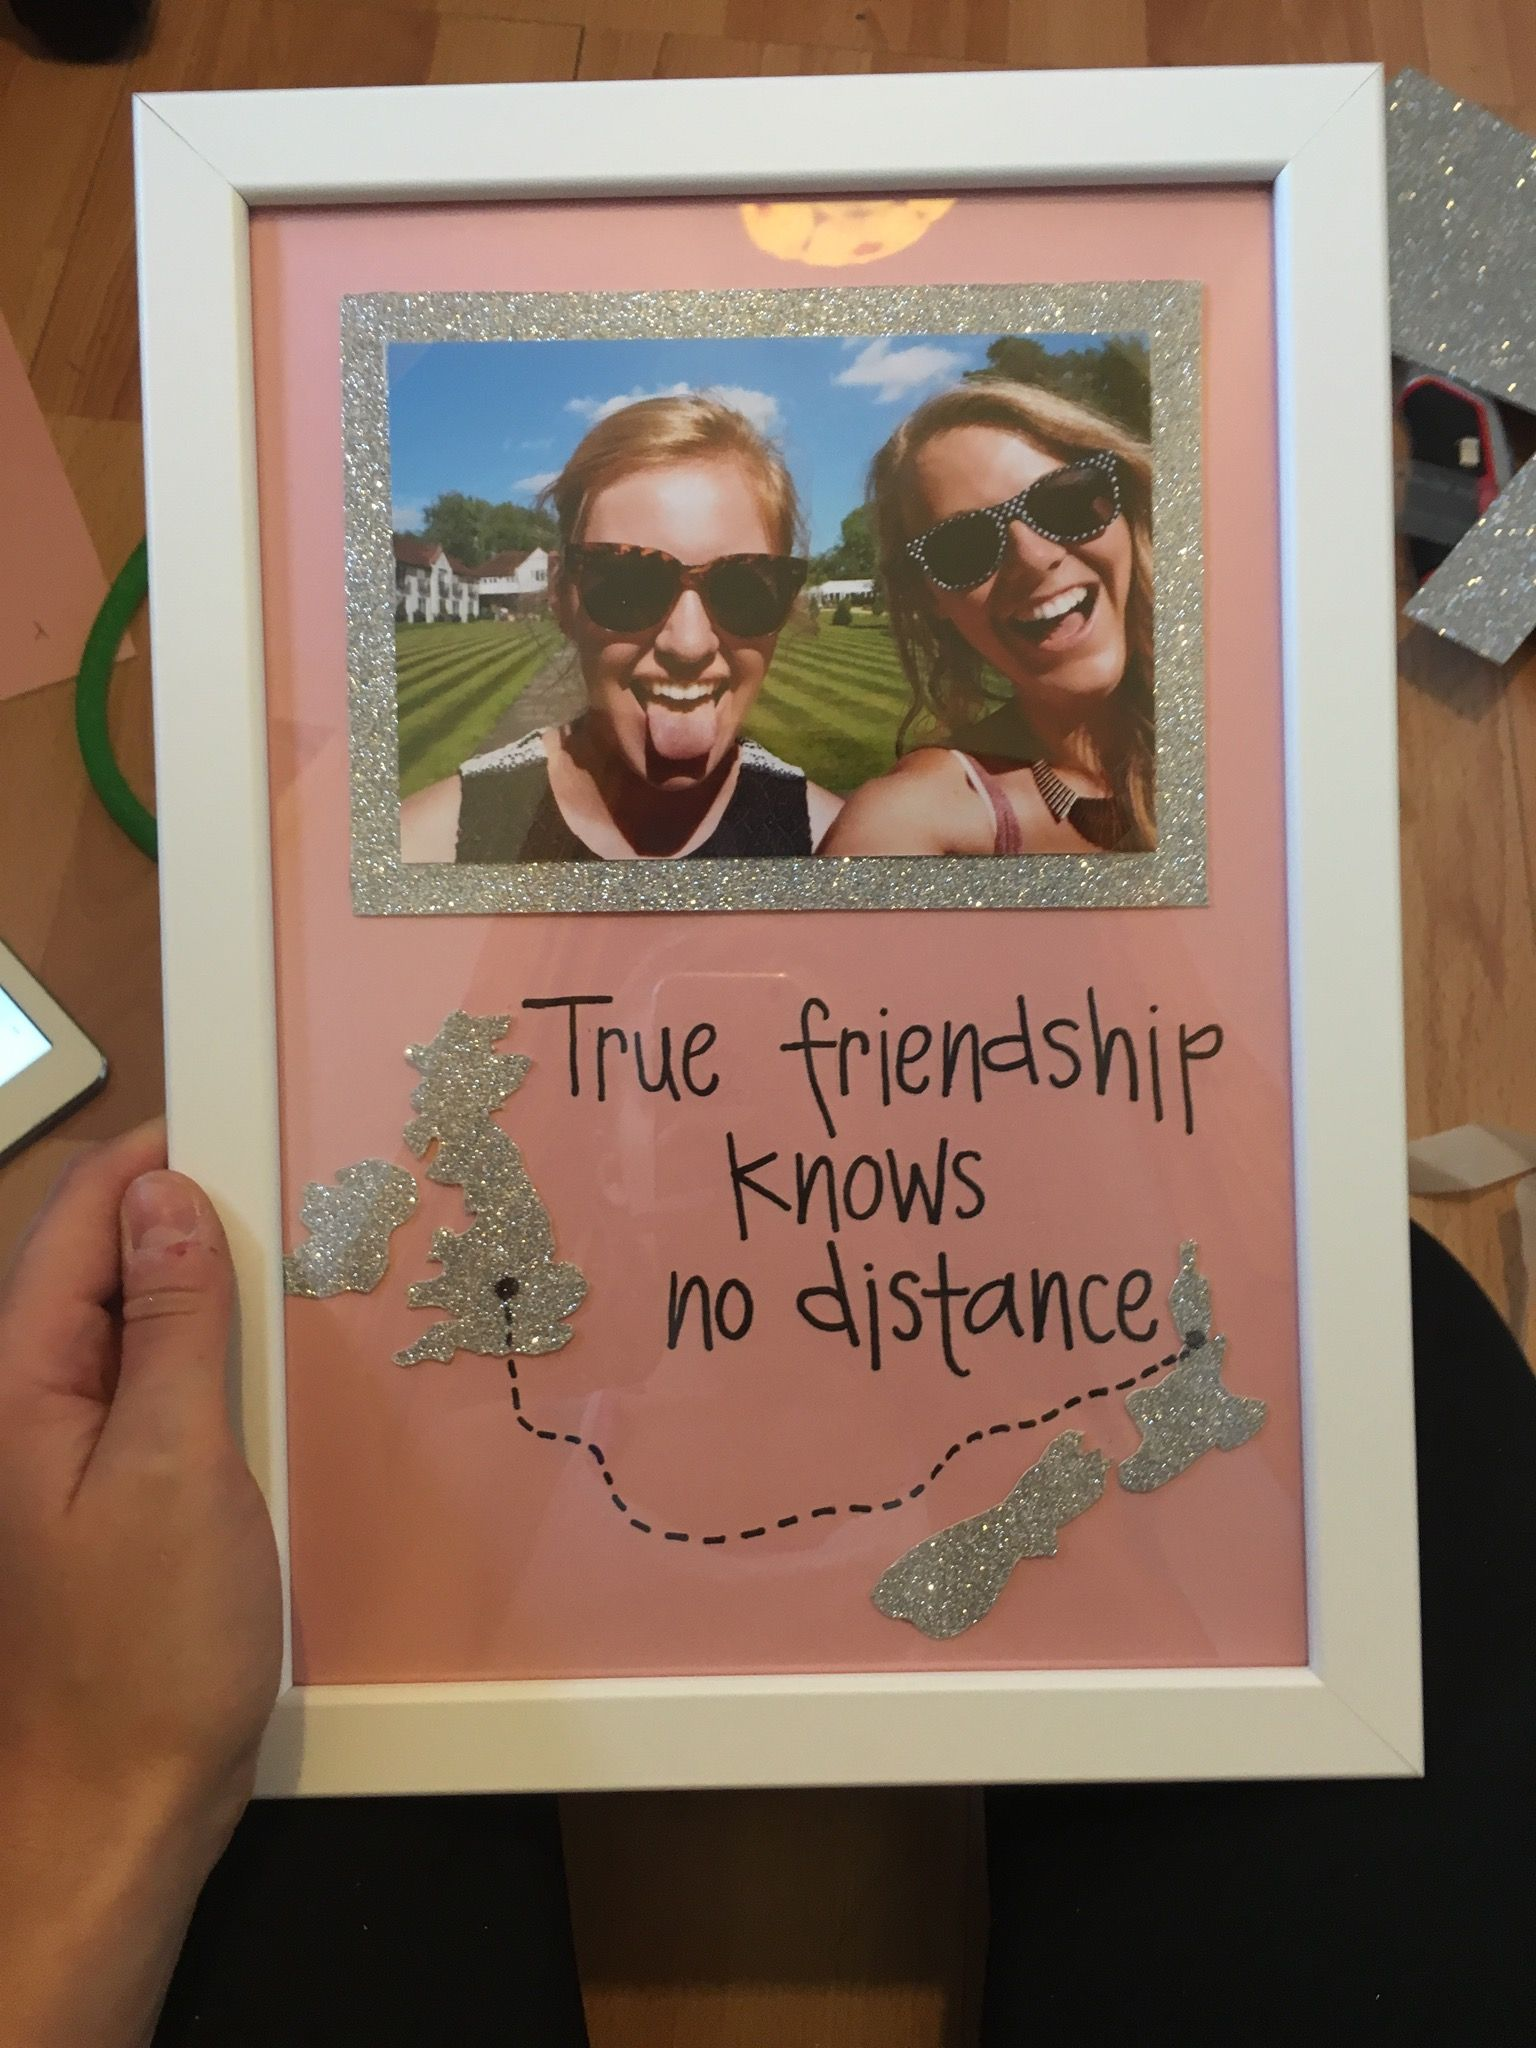 Best Friend Moving Away Gift Friend Moving Away Gifts